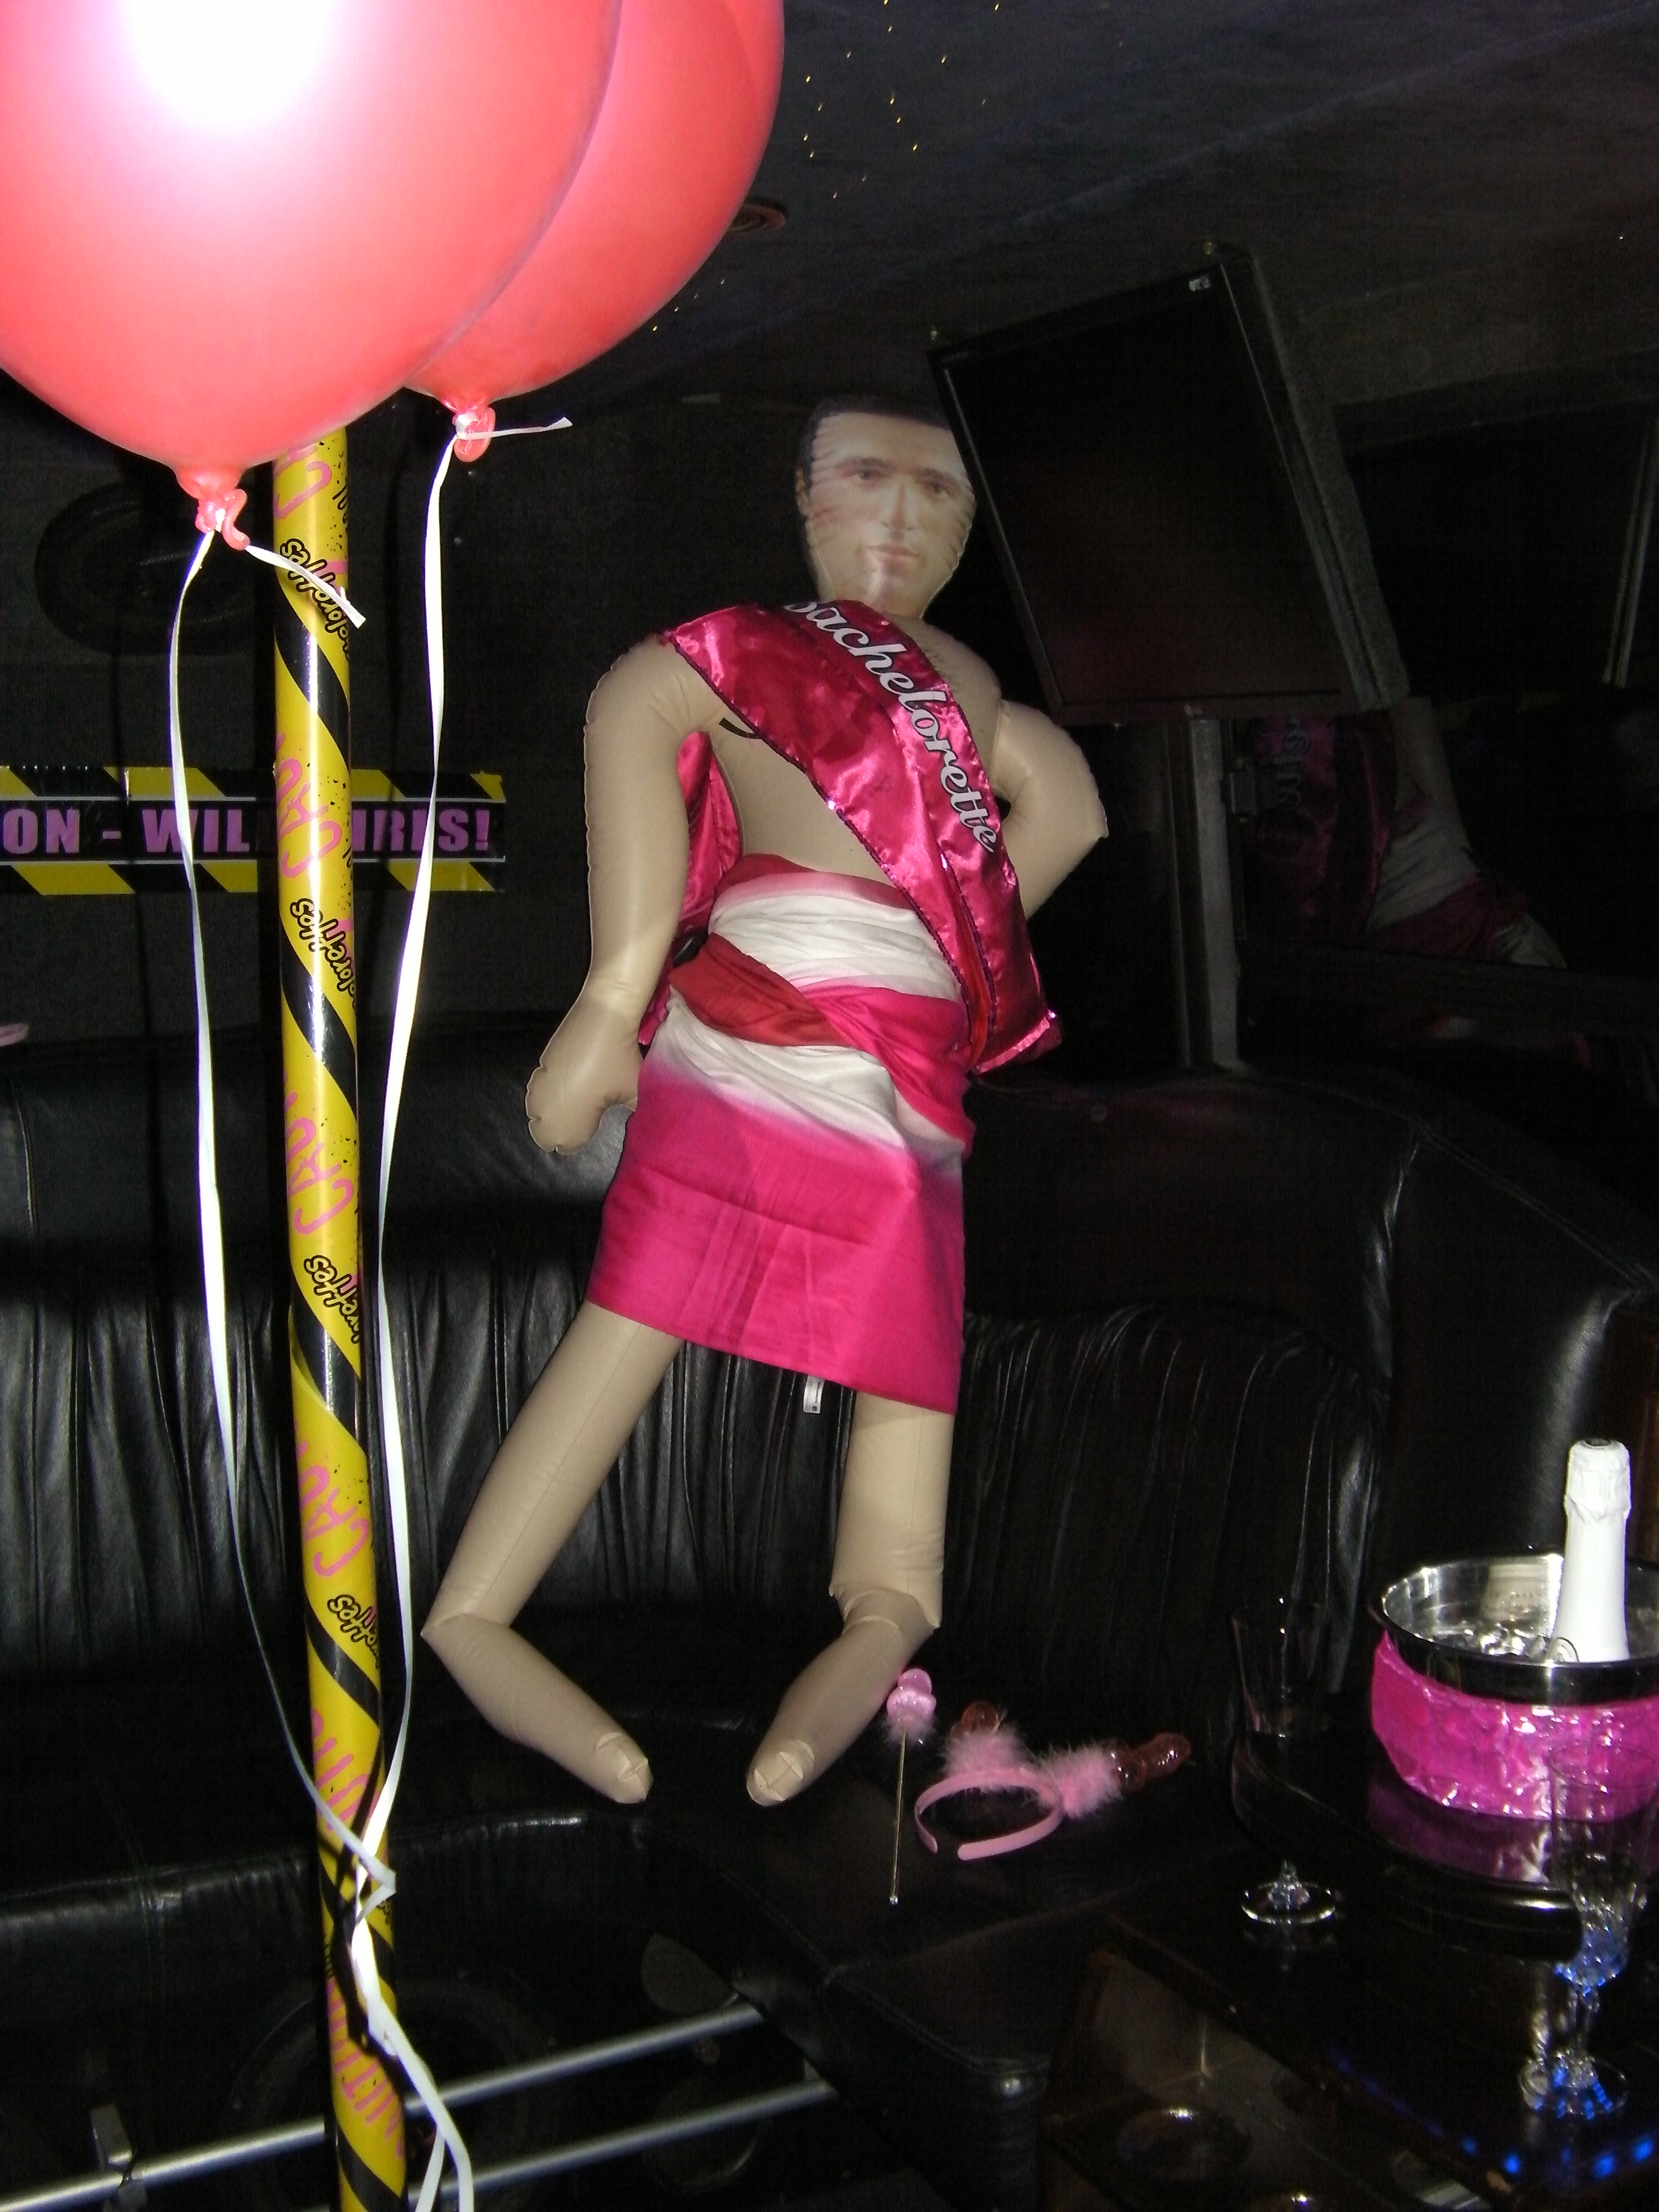 SANY0007 - VIP Party Bus Bachelorette